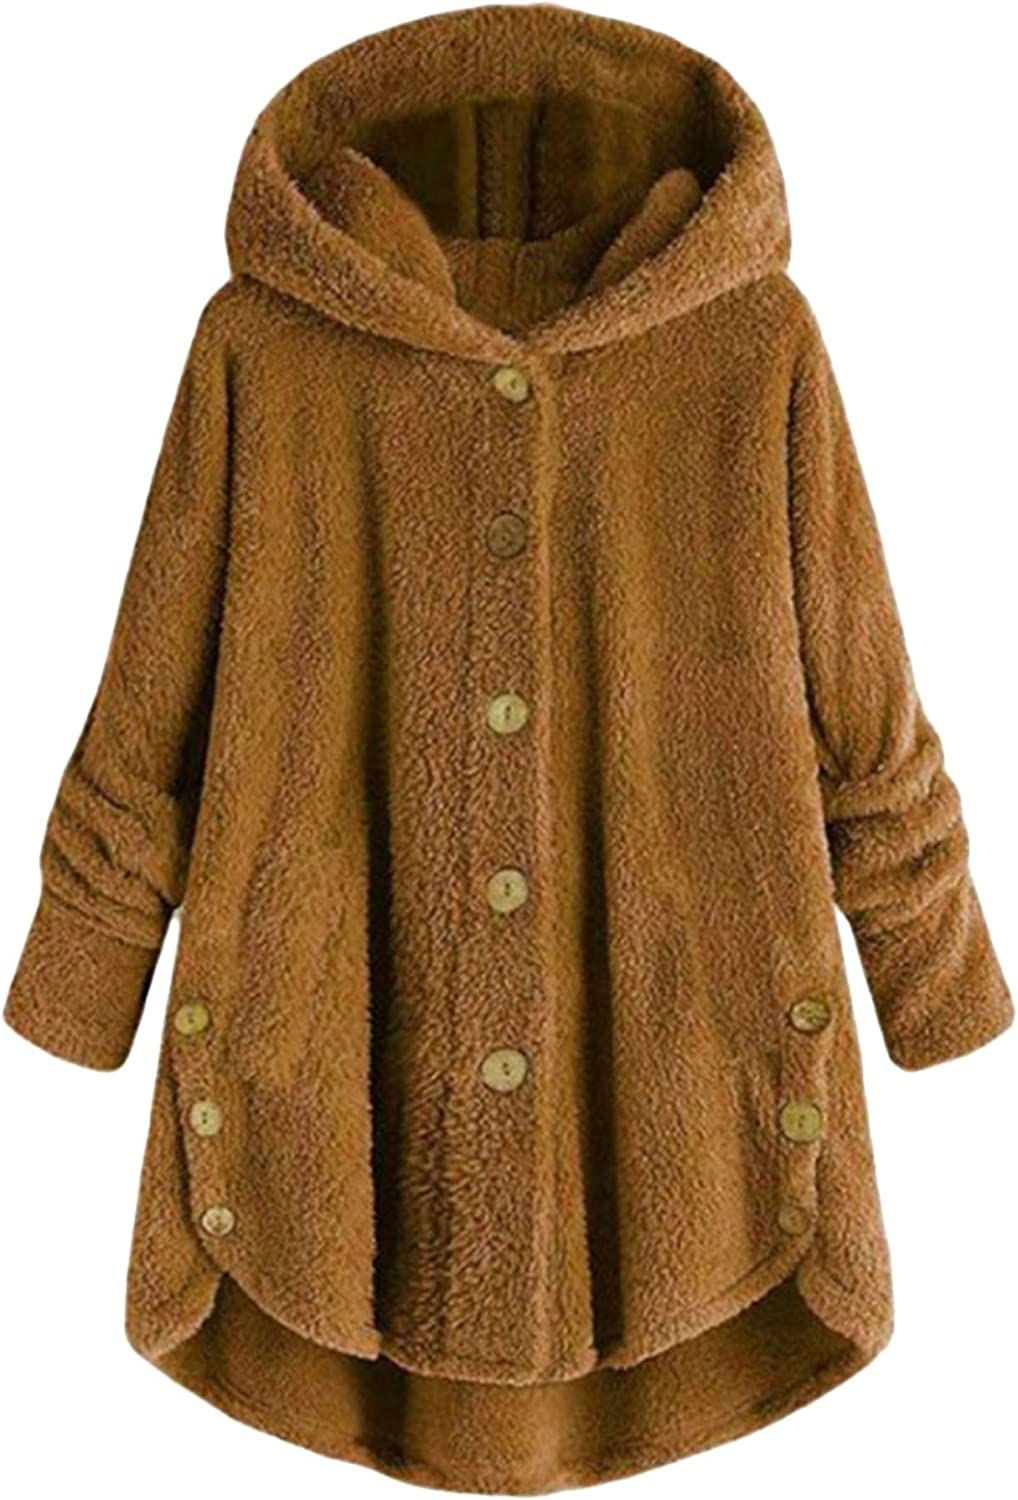 FLITAY Womens' Fashion Button Coat Fluffy Tail Tops Hooded Pullover Loose Sweater